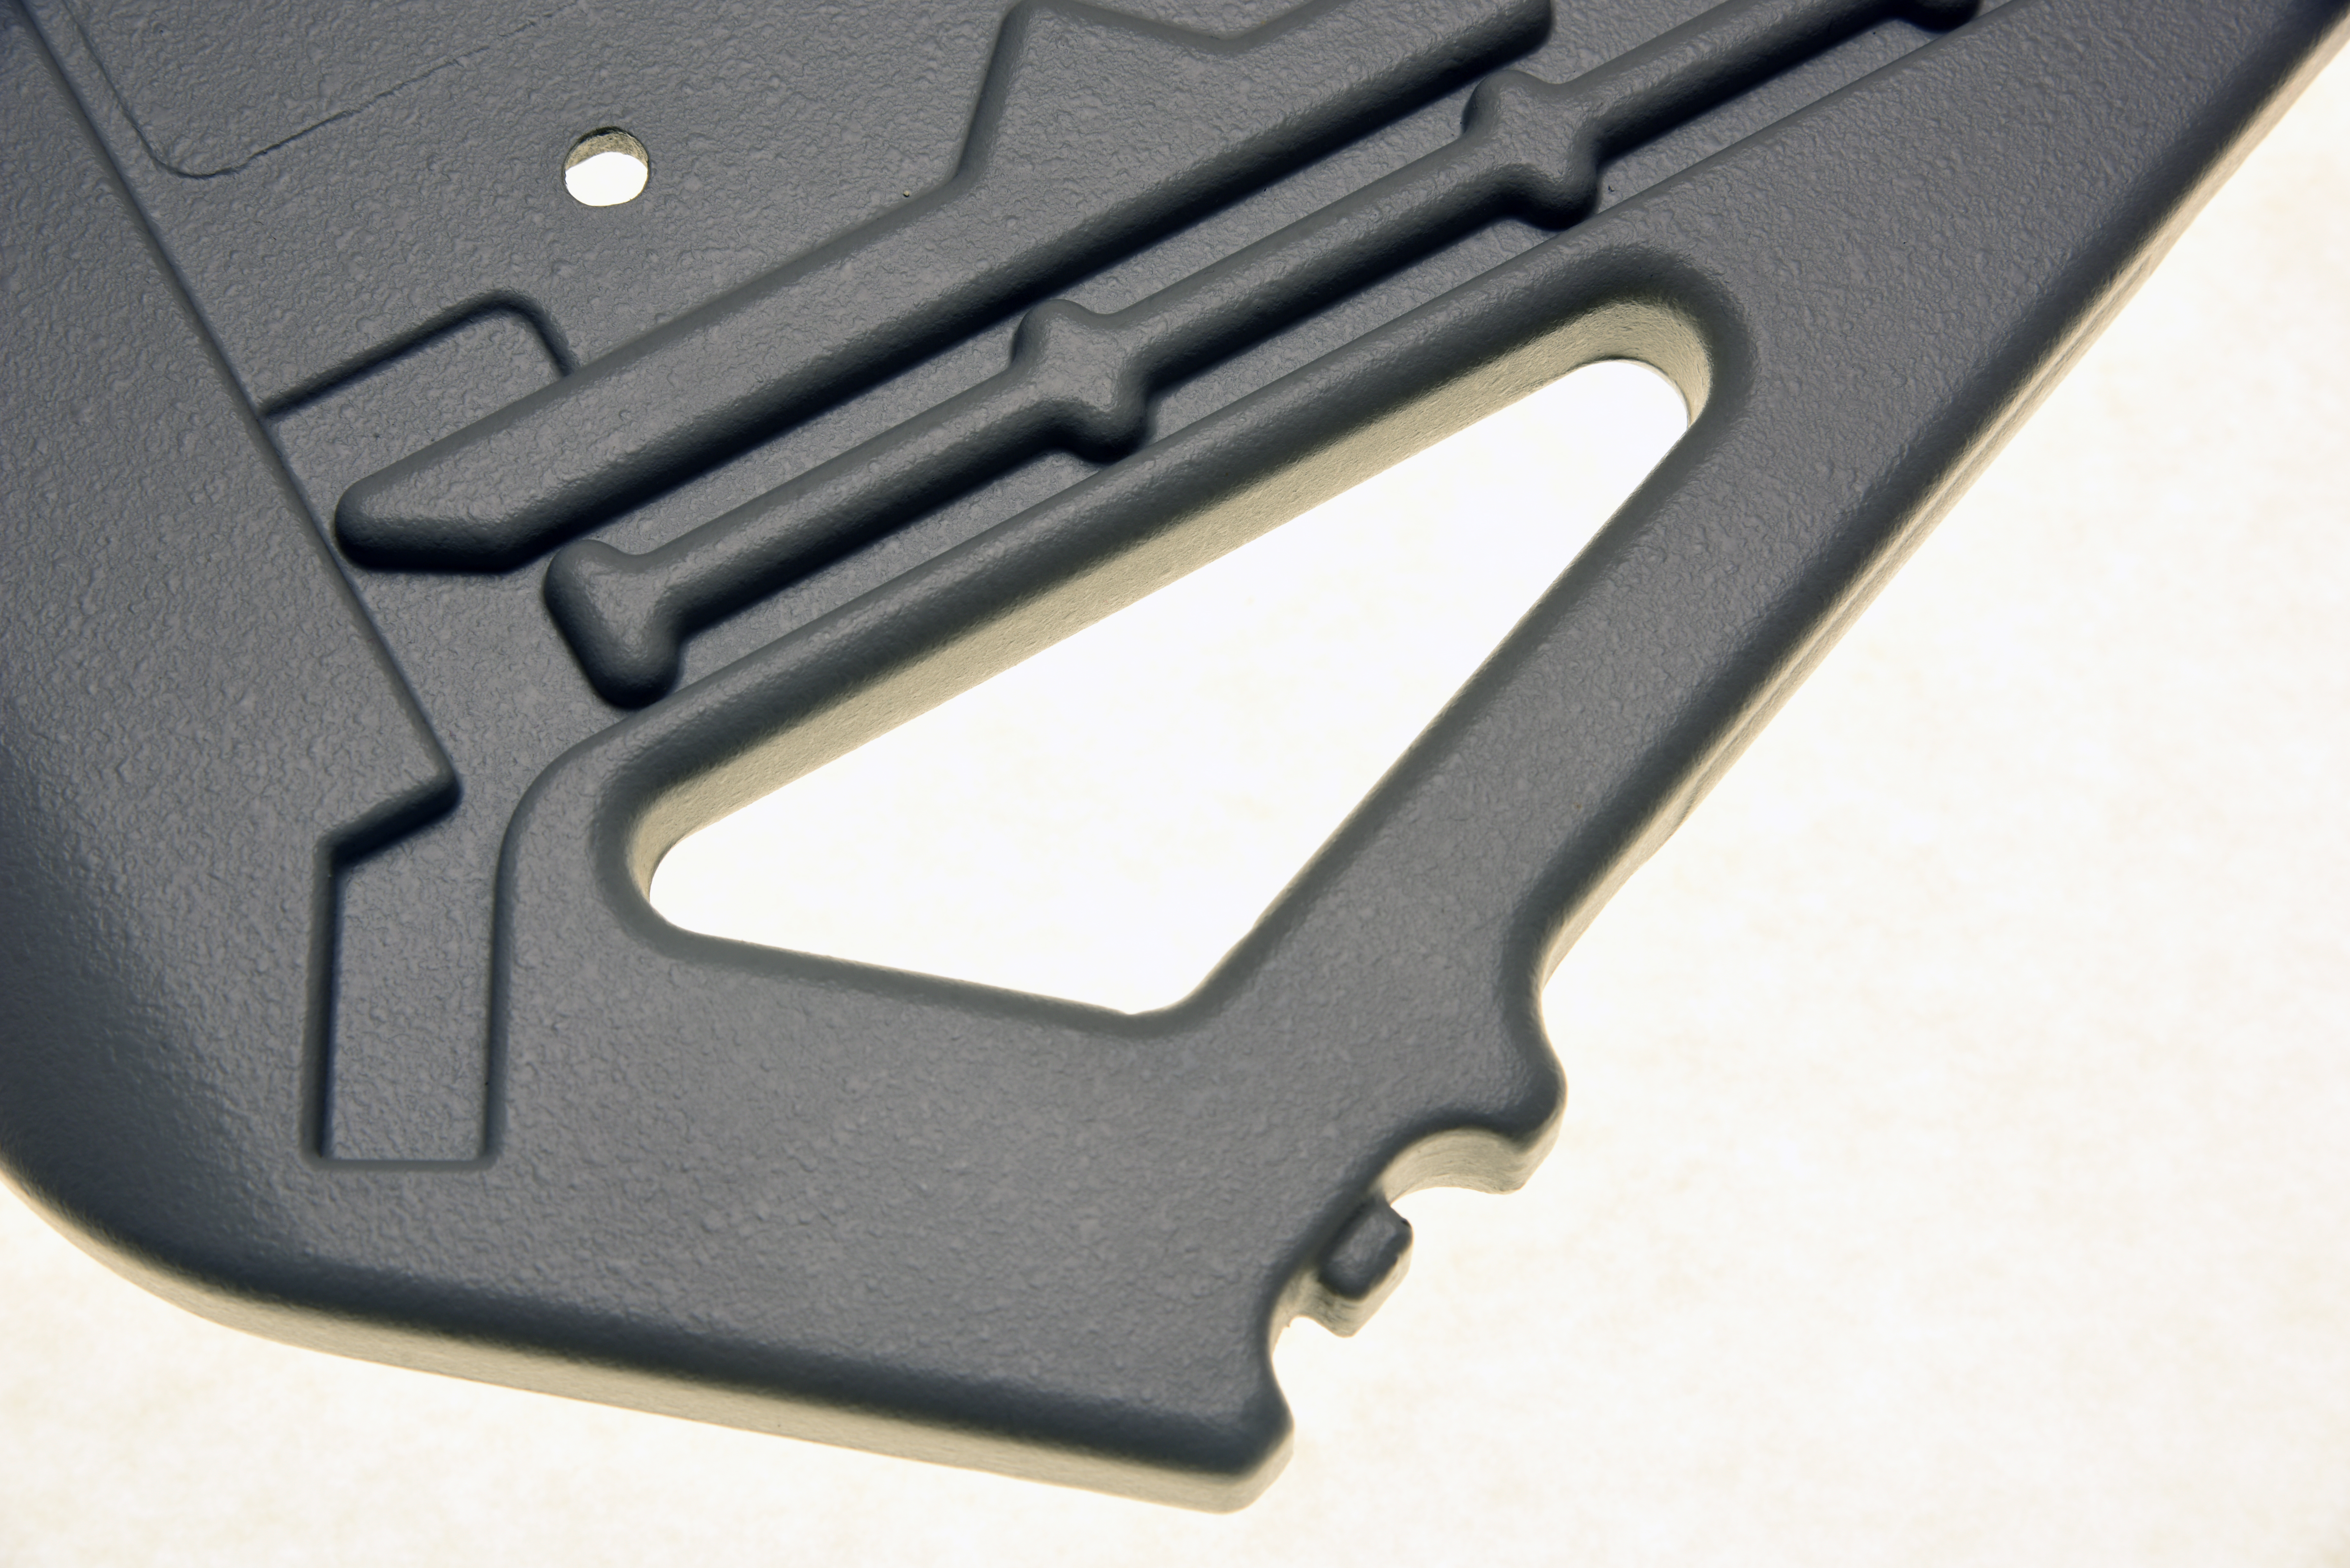 Reaction Injection Molded Product